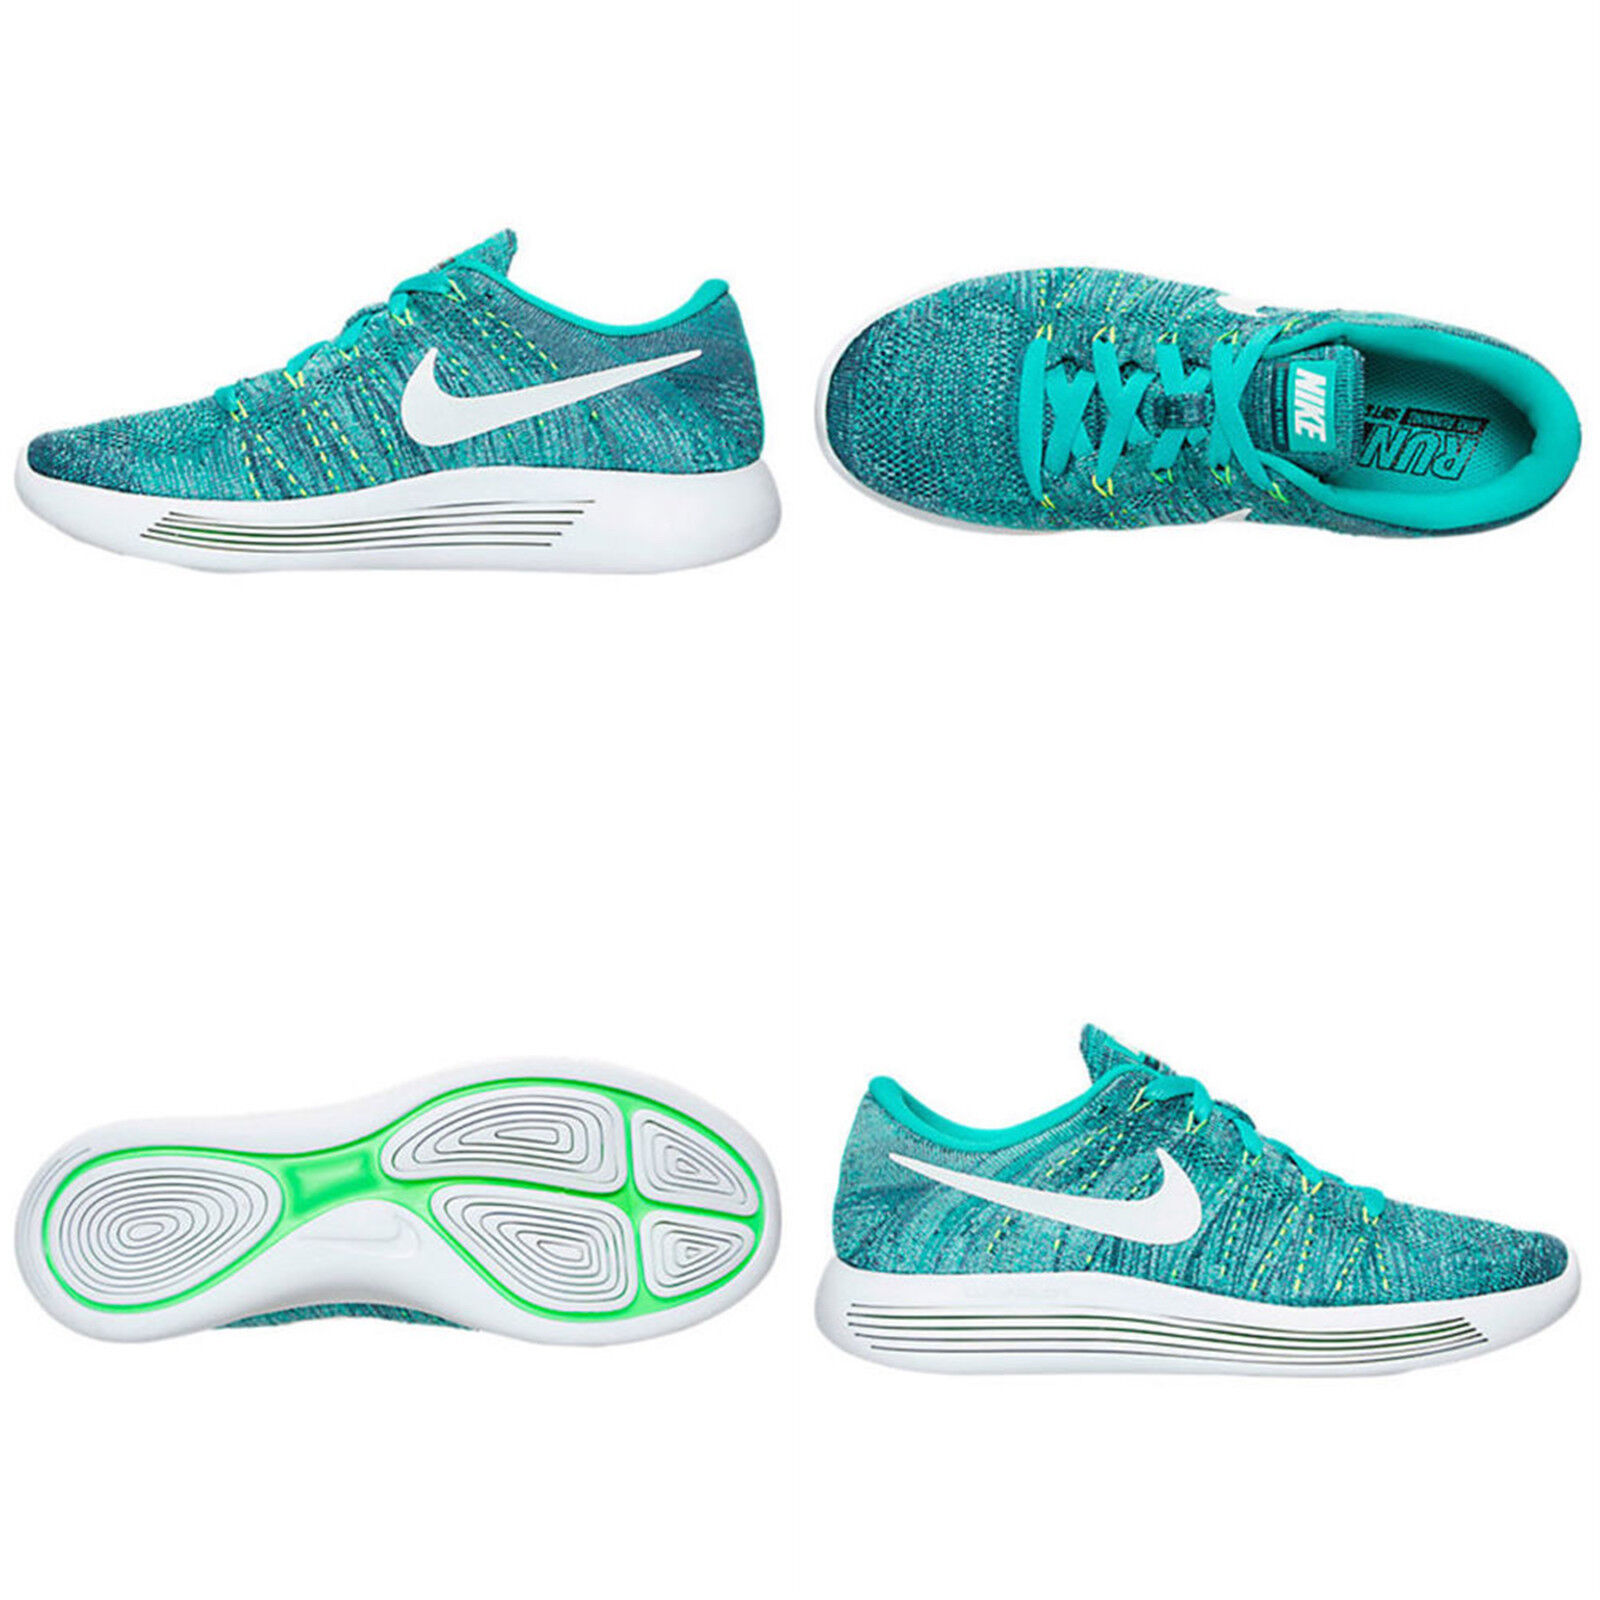 Women's NIKE LUNAREPIC LOW FLYKNIT ,RUNNING/CASUAl Shoe.NEW WITH BOX